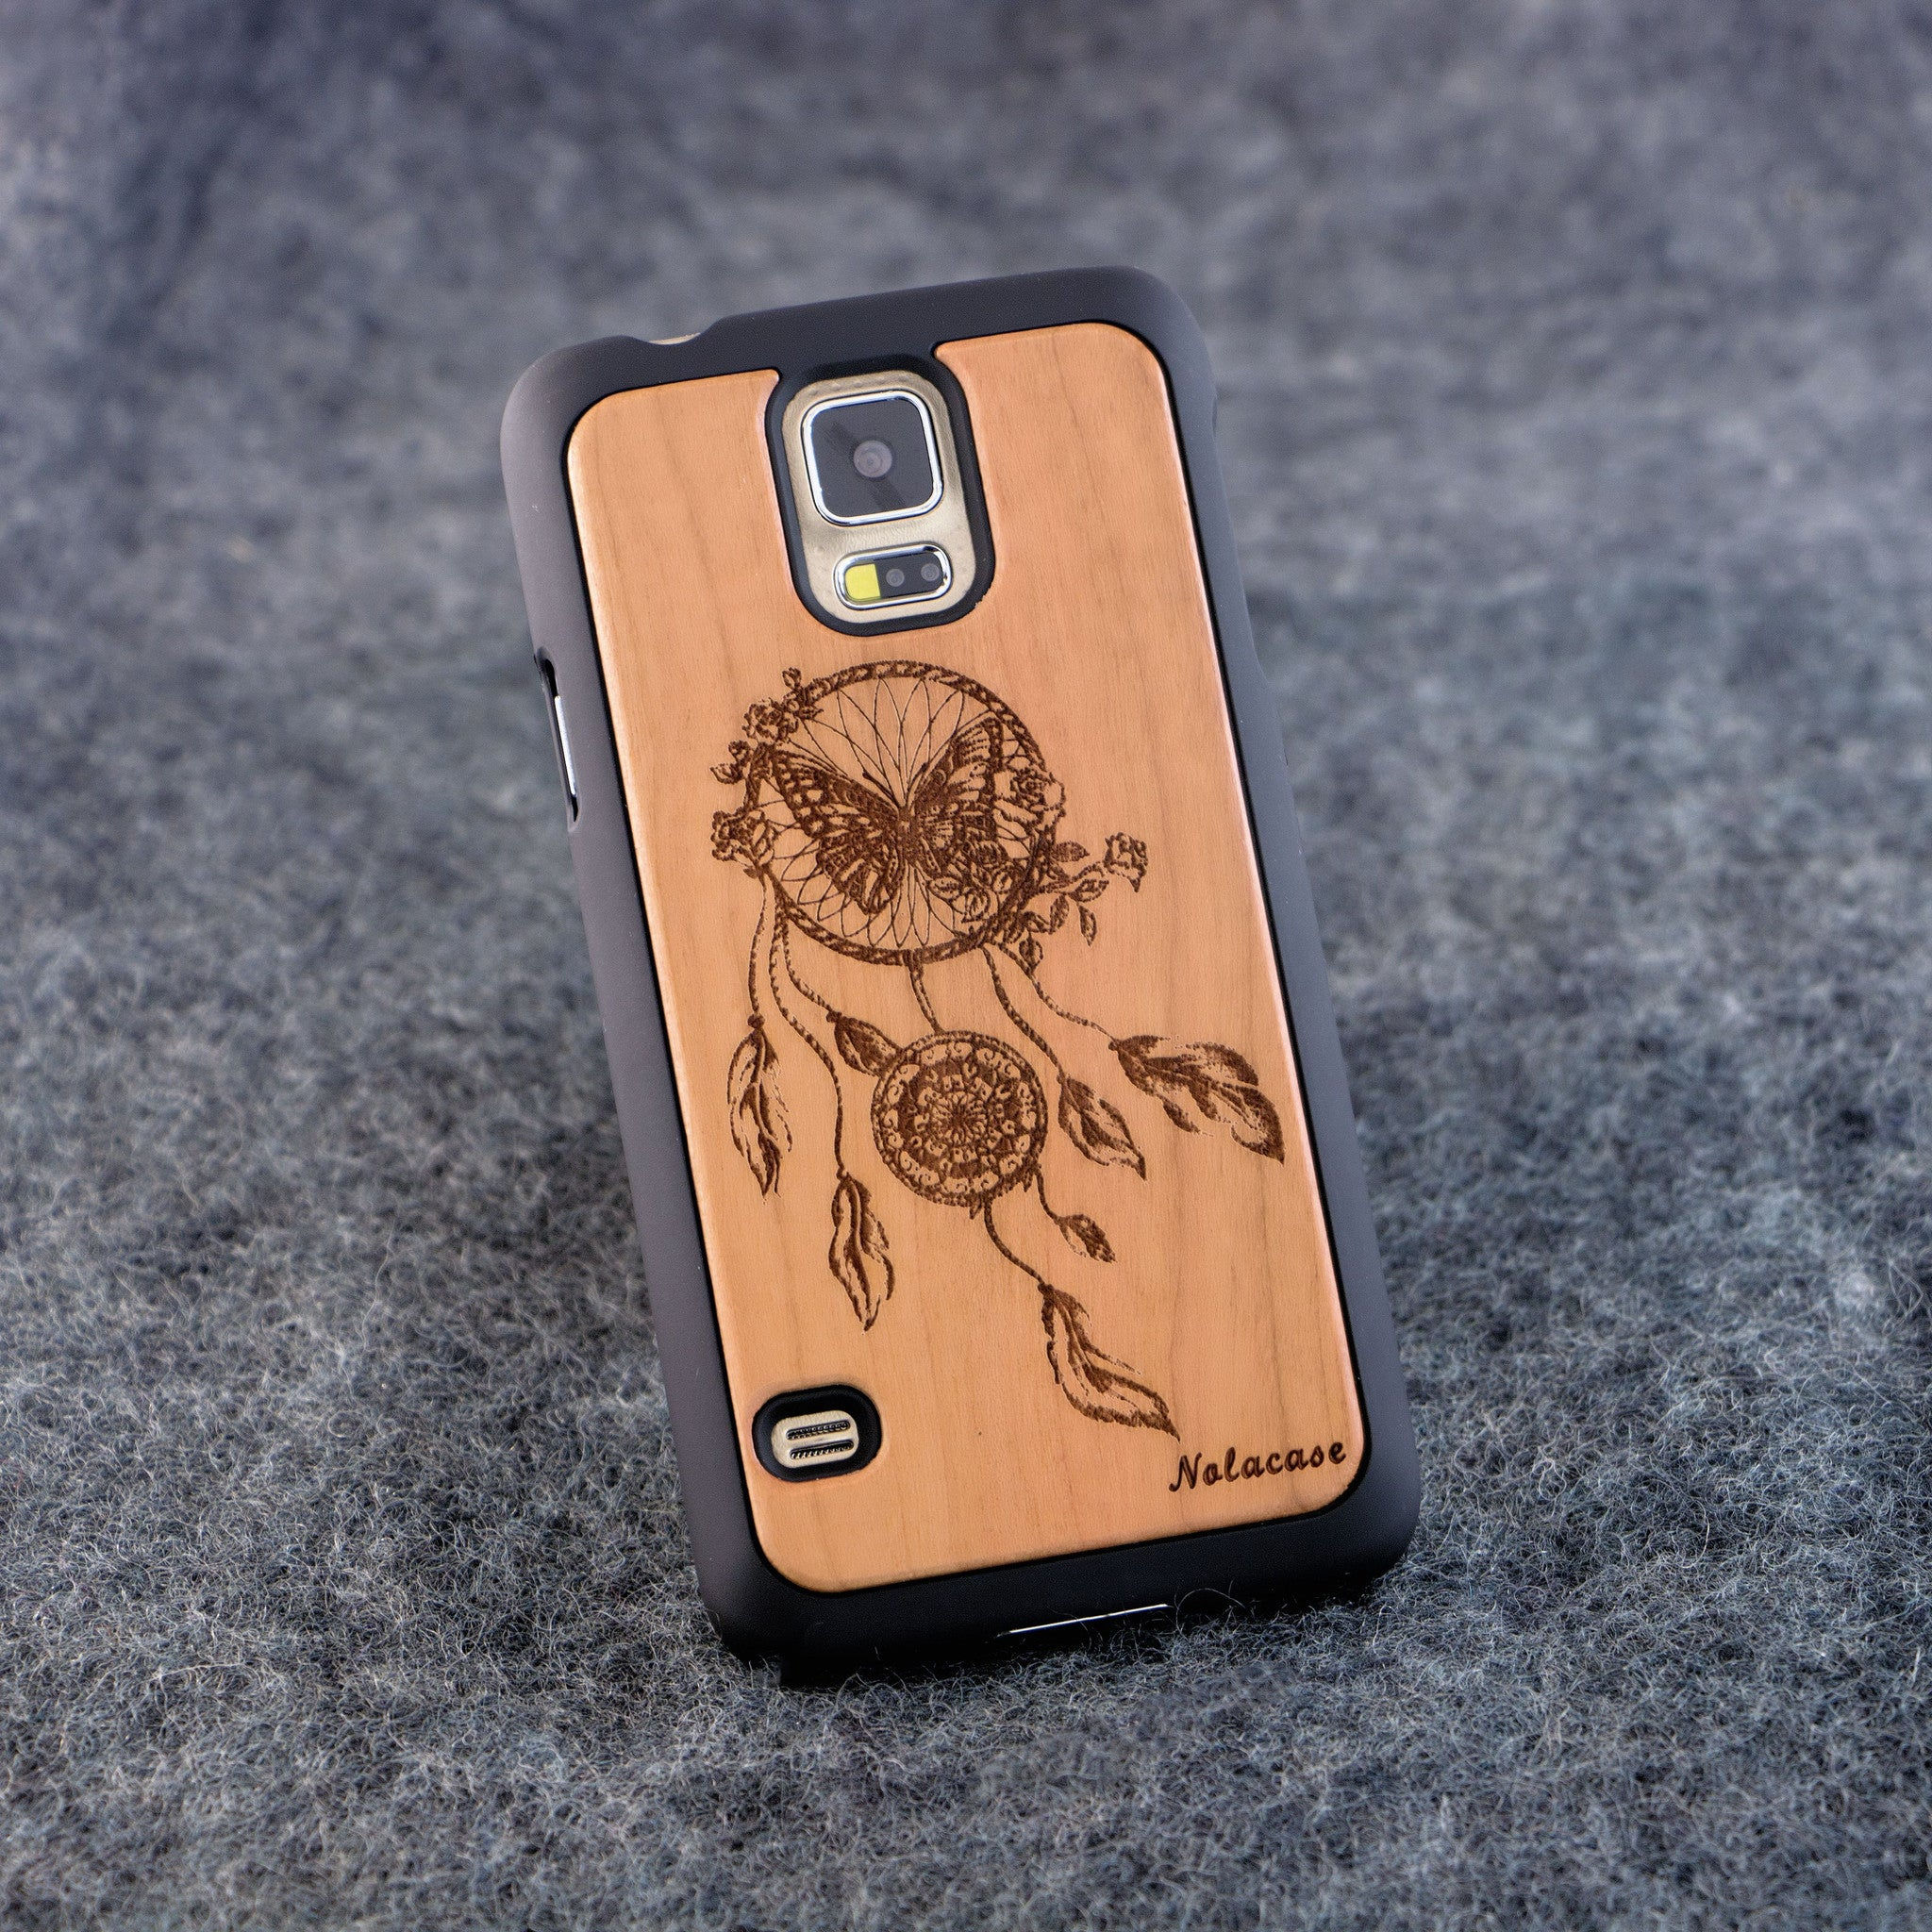 Samsung S5 Dream Catcher with Butterfly Slim Wood Case - NOLACASE